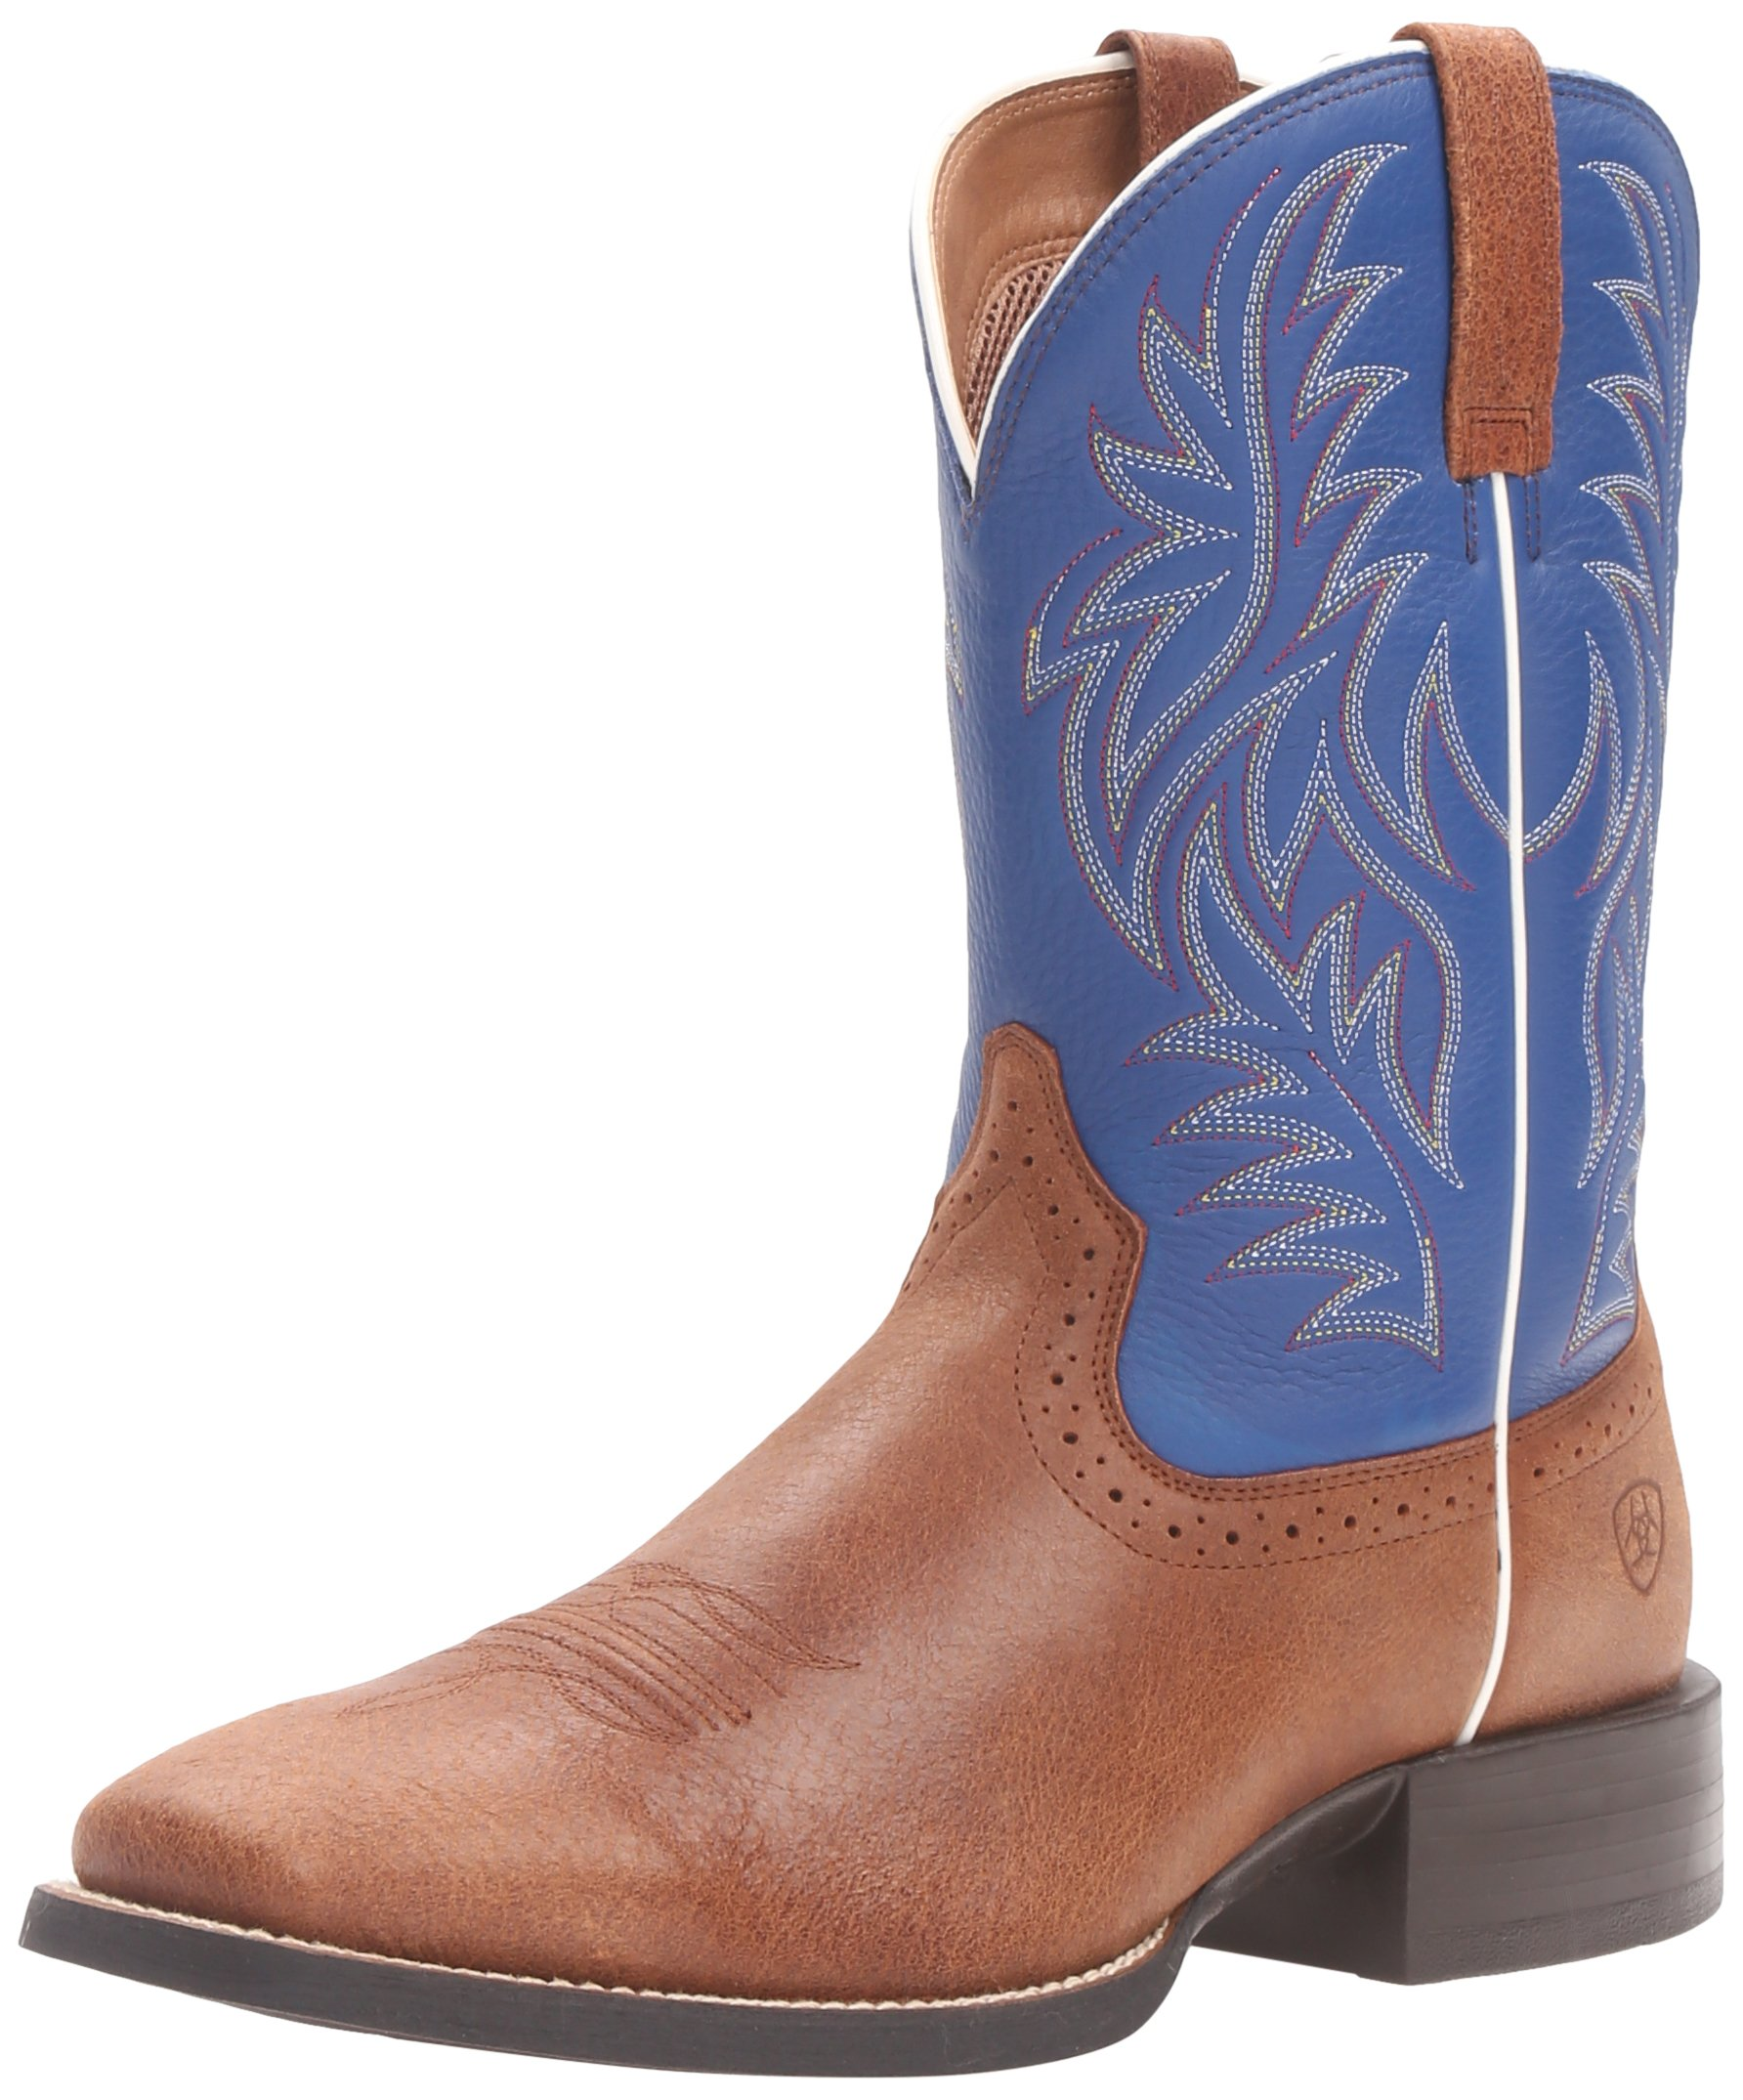 Ariat Men's Sport Western Cowboy Boot, Red Angus Brown/Royal, 10 2E US